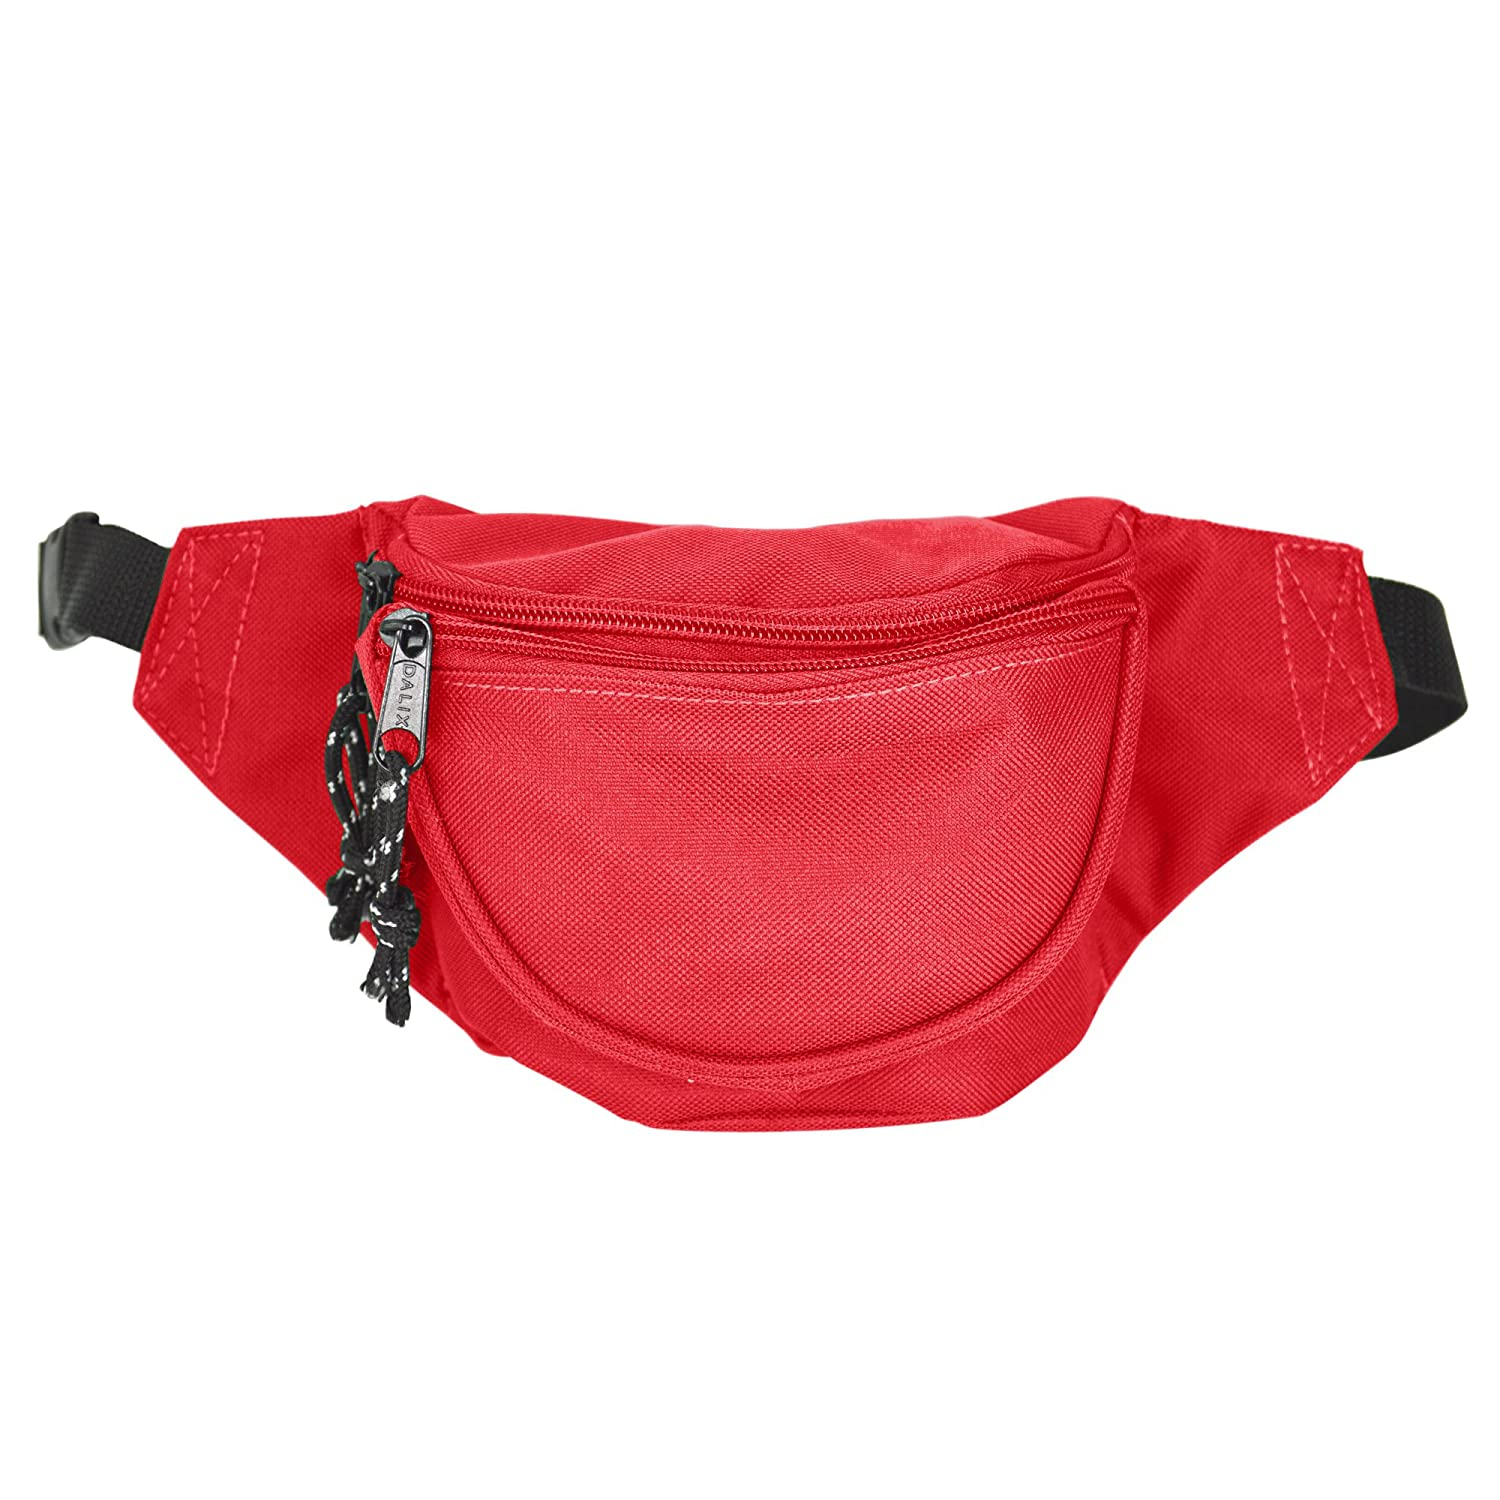 DALIX Fanny Pack w// 3 Pockets Traveling Concealment Pouch Airport Money Bag